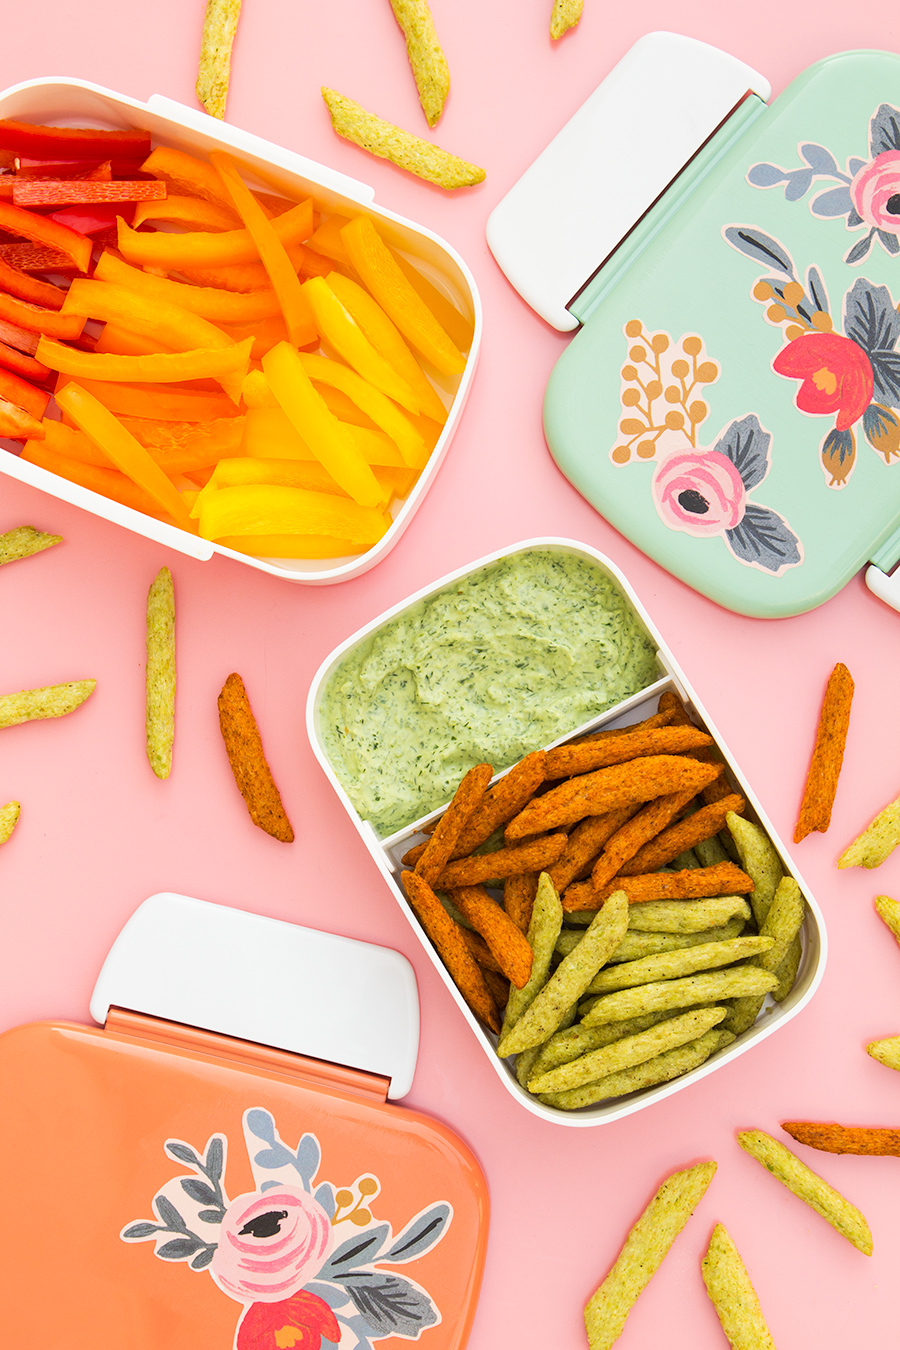 You can make this skinny green goddess dip is just 5 minutes and it's perfectly packable for lunches and picnics. Serve it with @HarvestSnaps and crudités for a tasty snack!